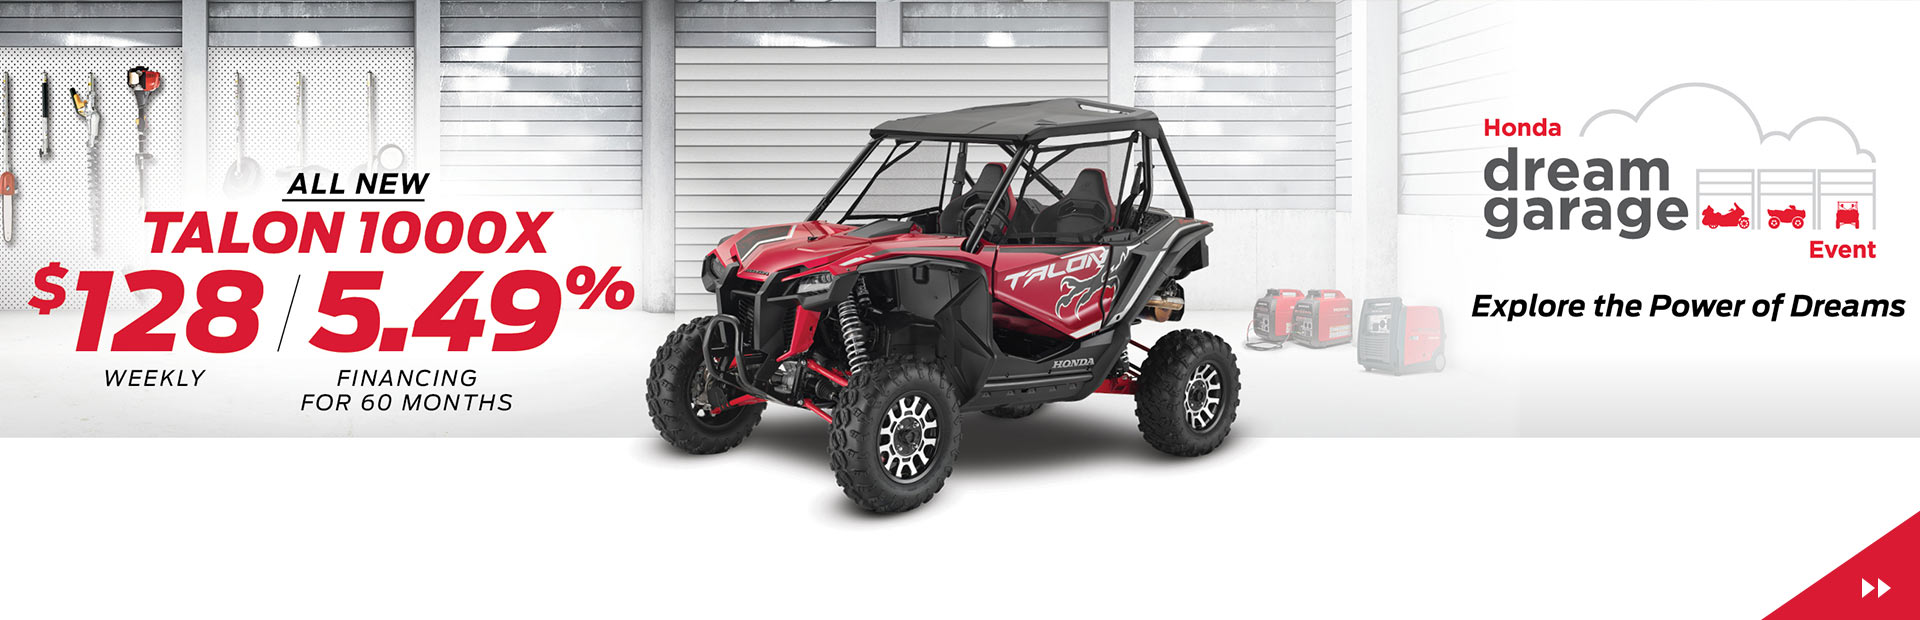 Get the All New Talon 1000X for $128 weekly with 5.49% Financing for 60 months